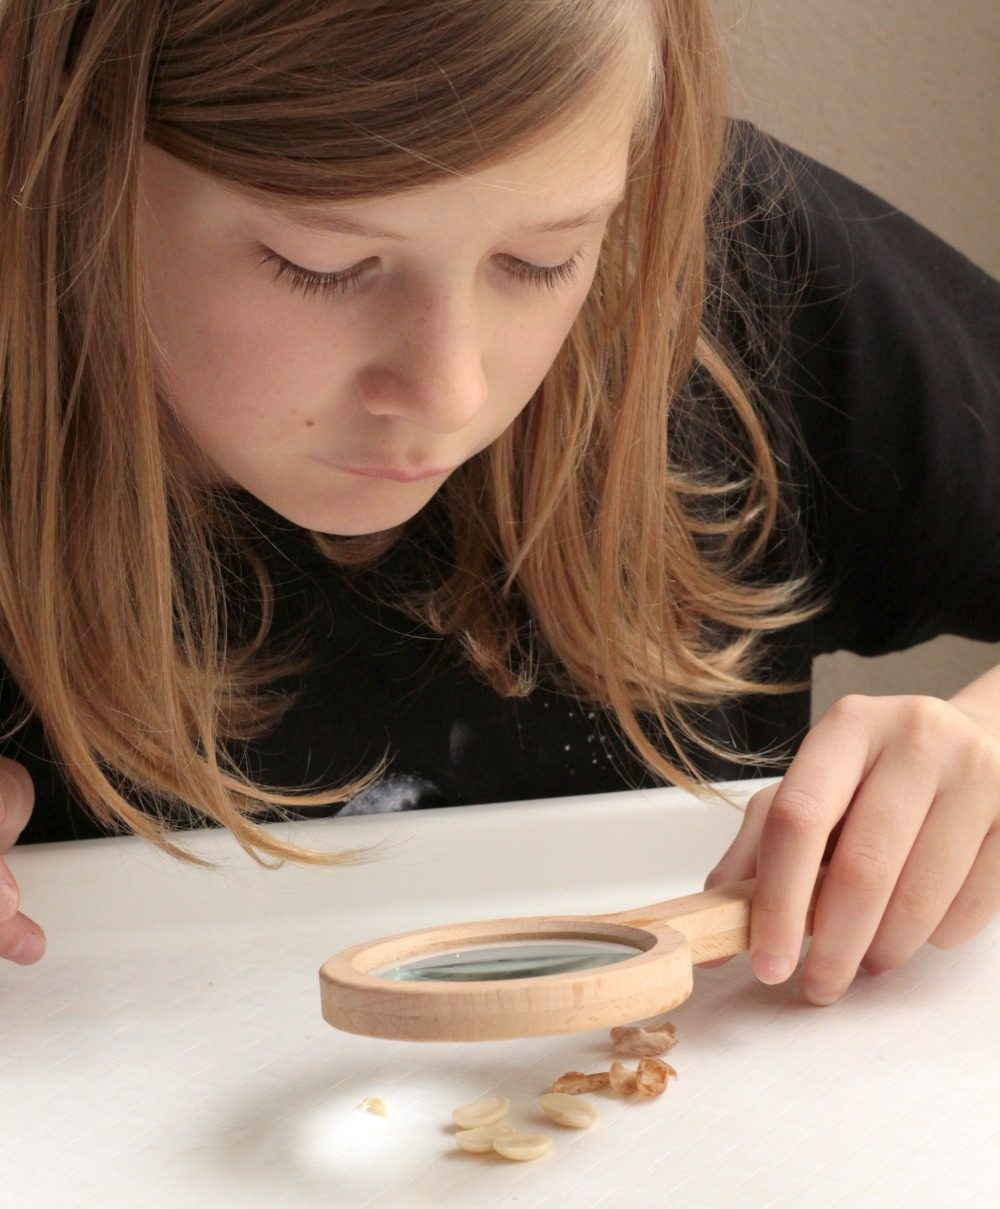 Learn about the parts of a seed in this simple activity to dissect a bean seed. It's a simple kitchen science project all kids will love!